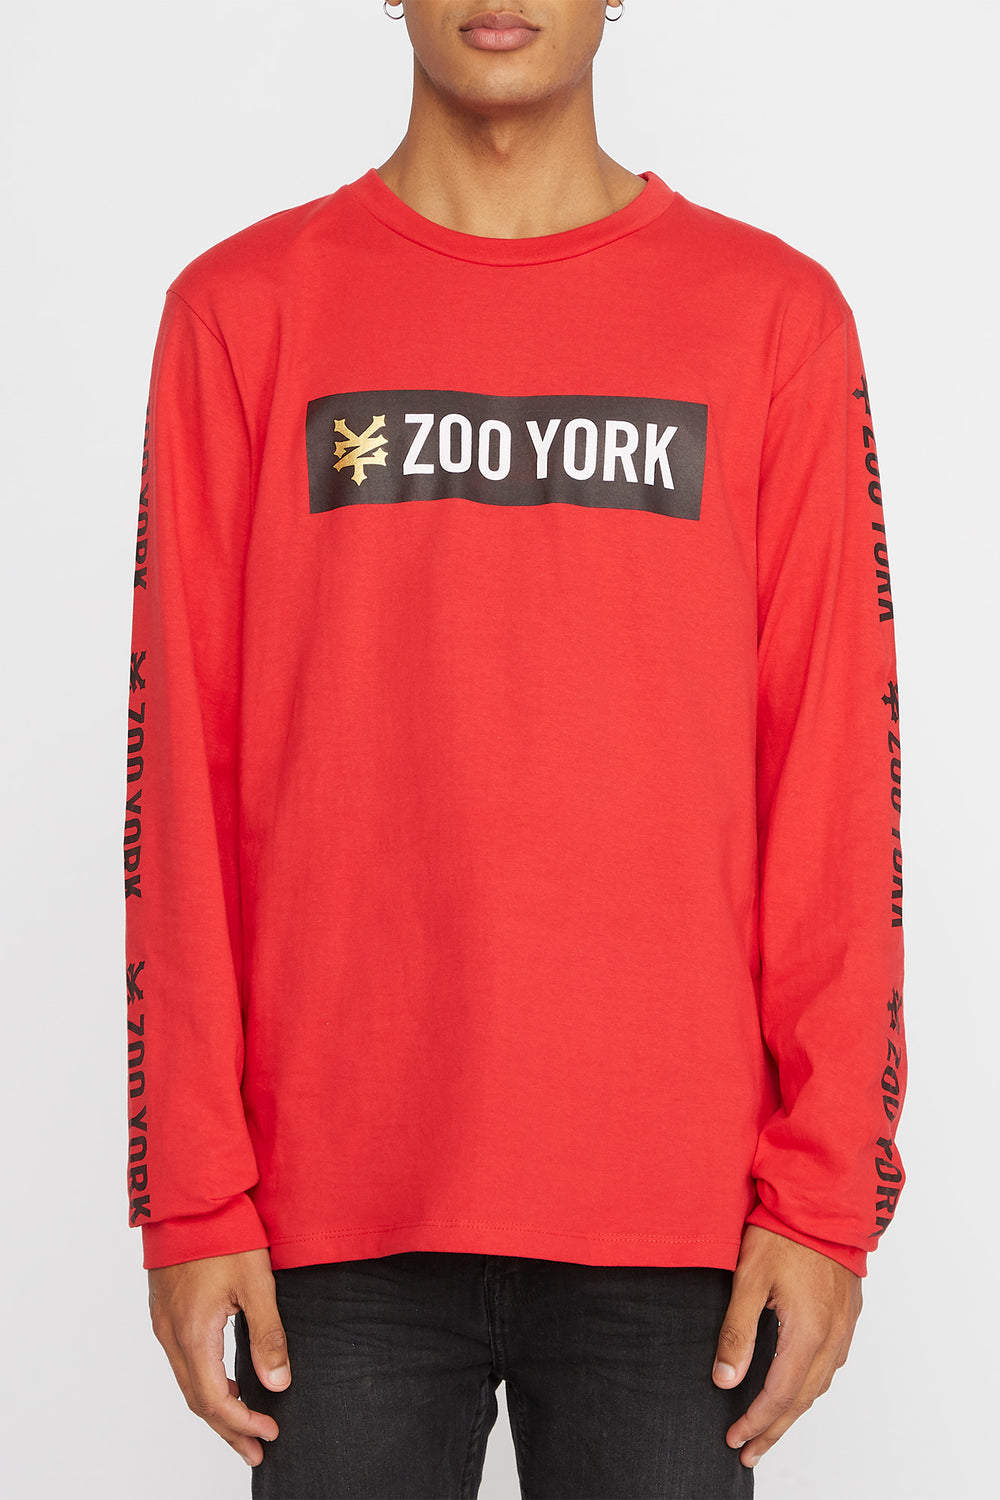 Zoo York Mens Classic Logo Long Sleeve Shirt Red